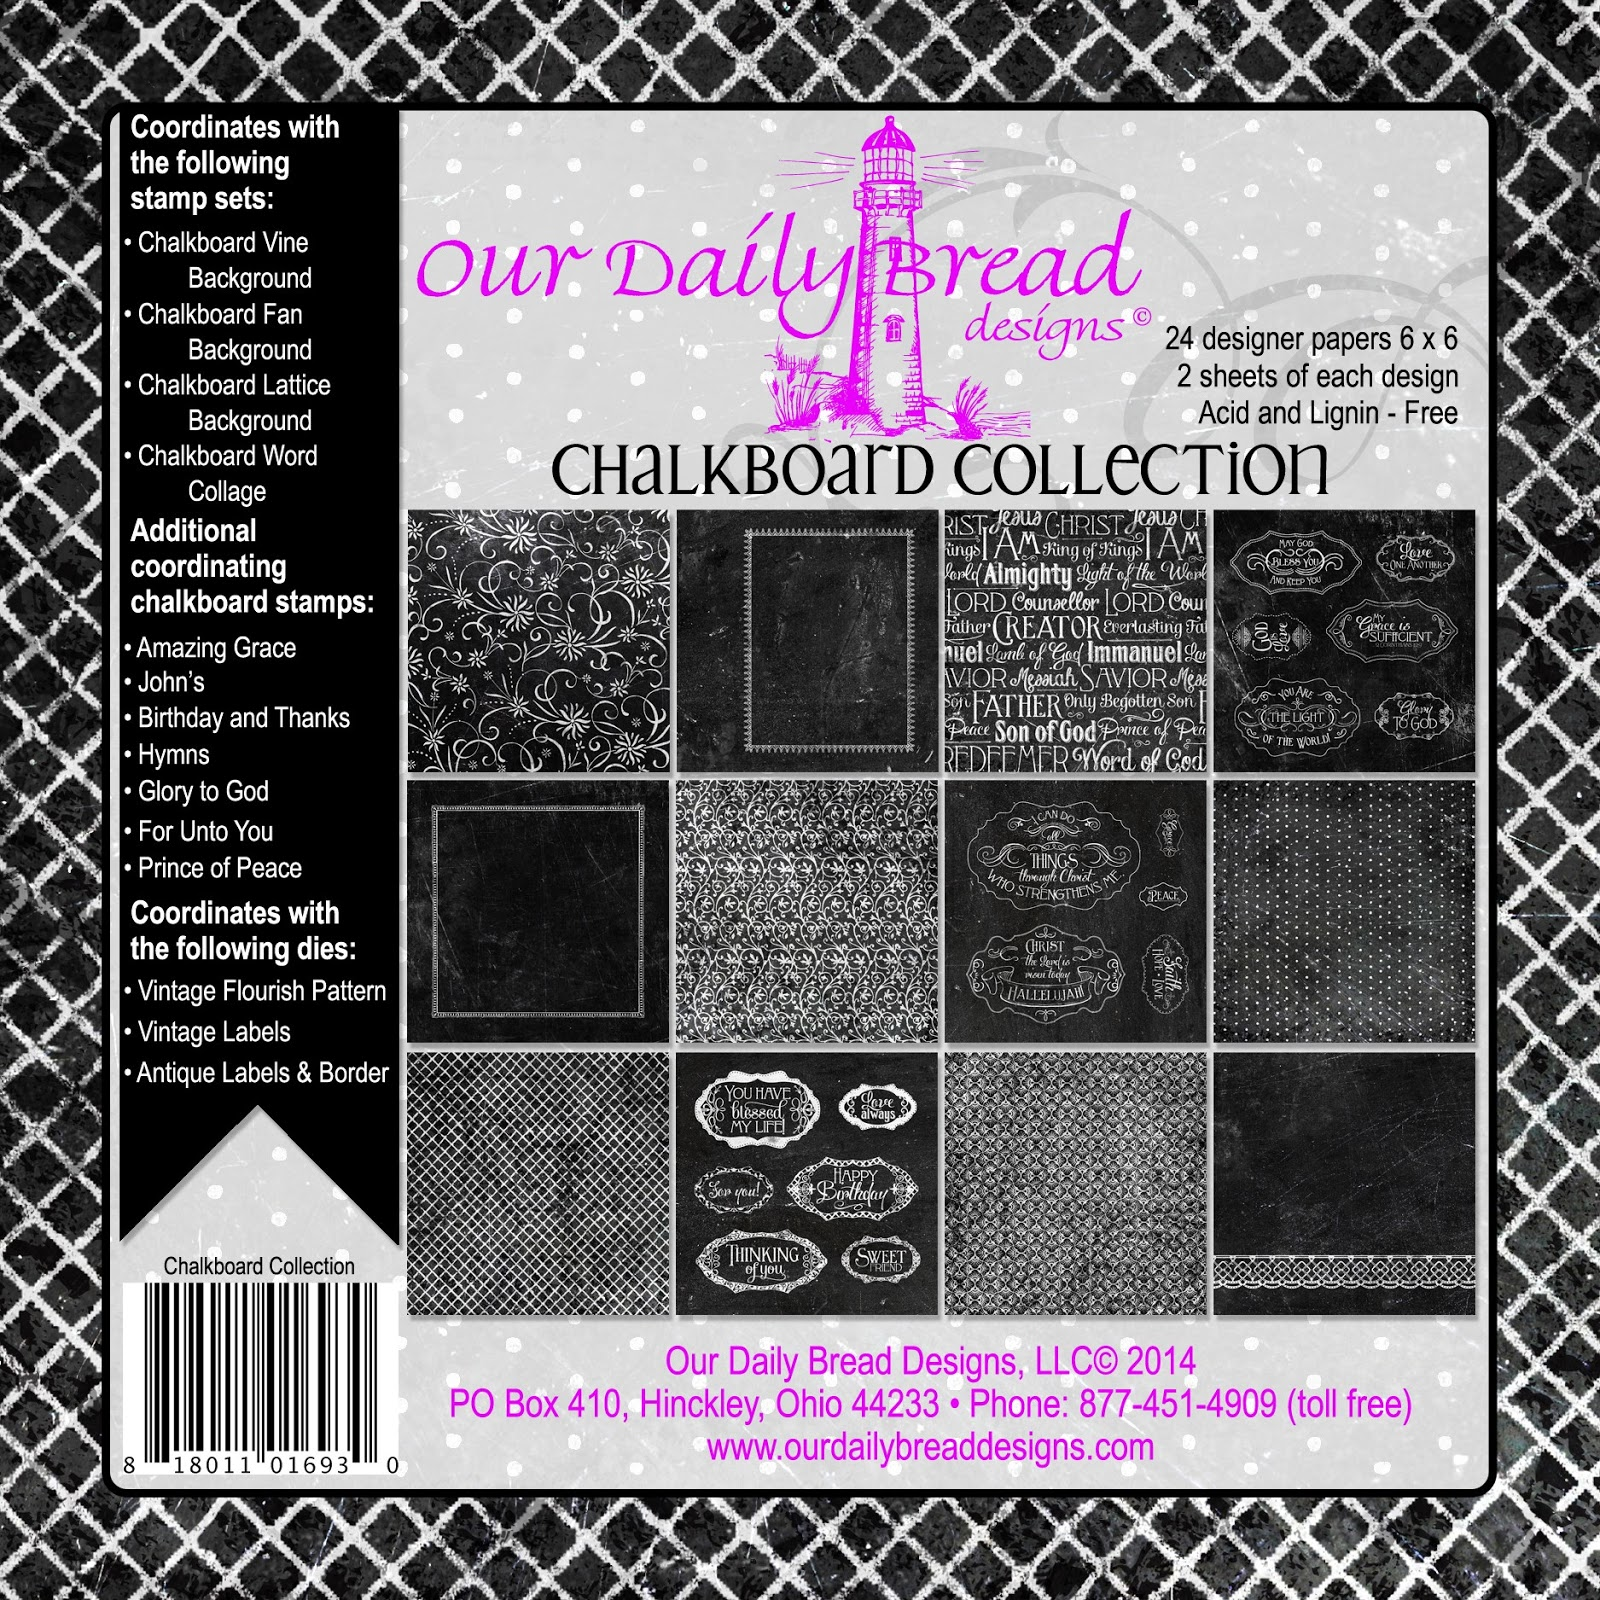 OUR DAILY BREAD DESIGNS CHALKBOARD PAPER COLLECTION